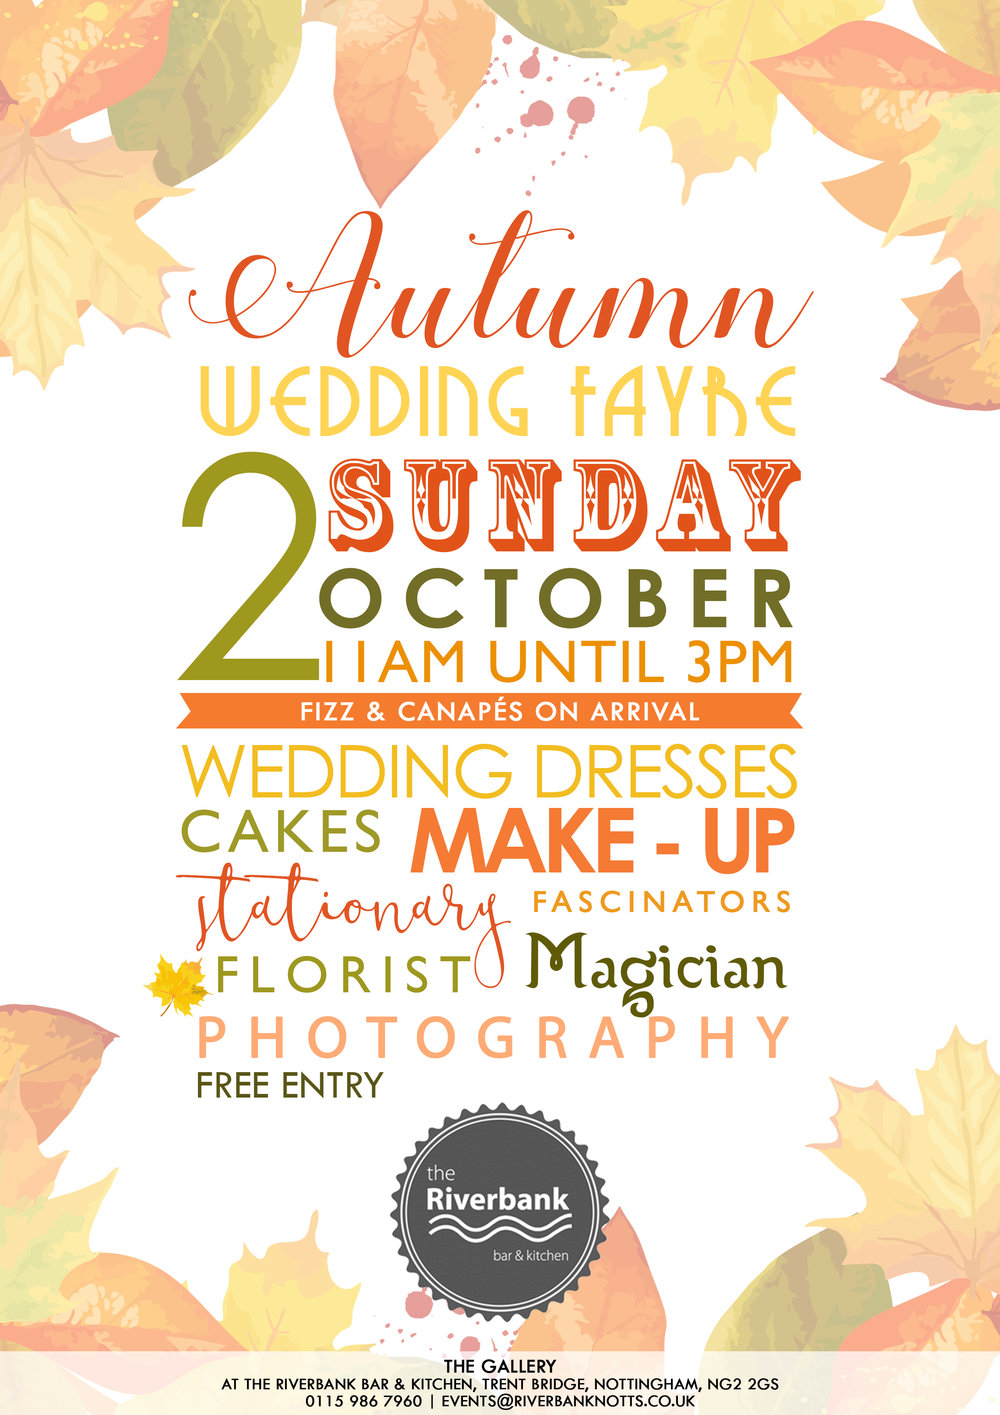 The Riverbank Autumn Wedding Fayre